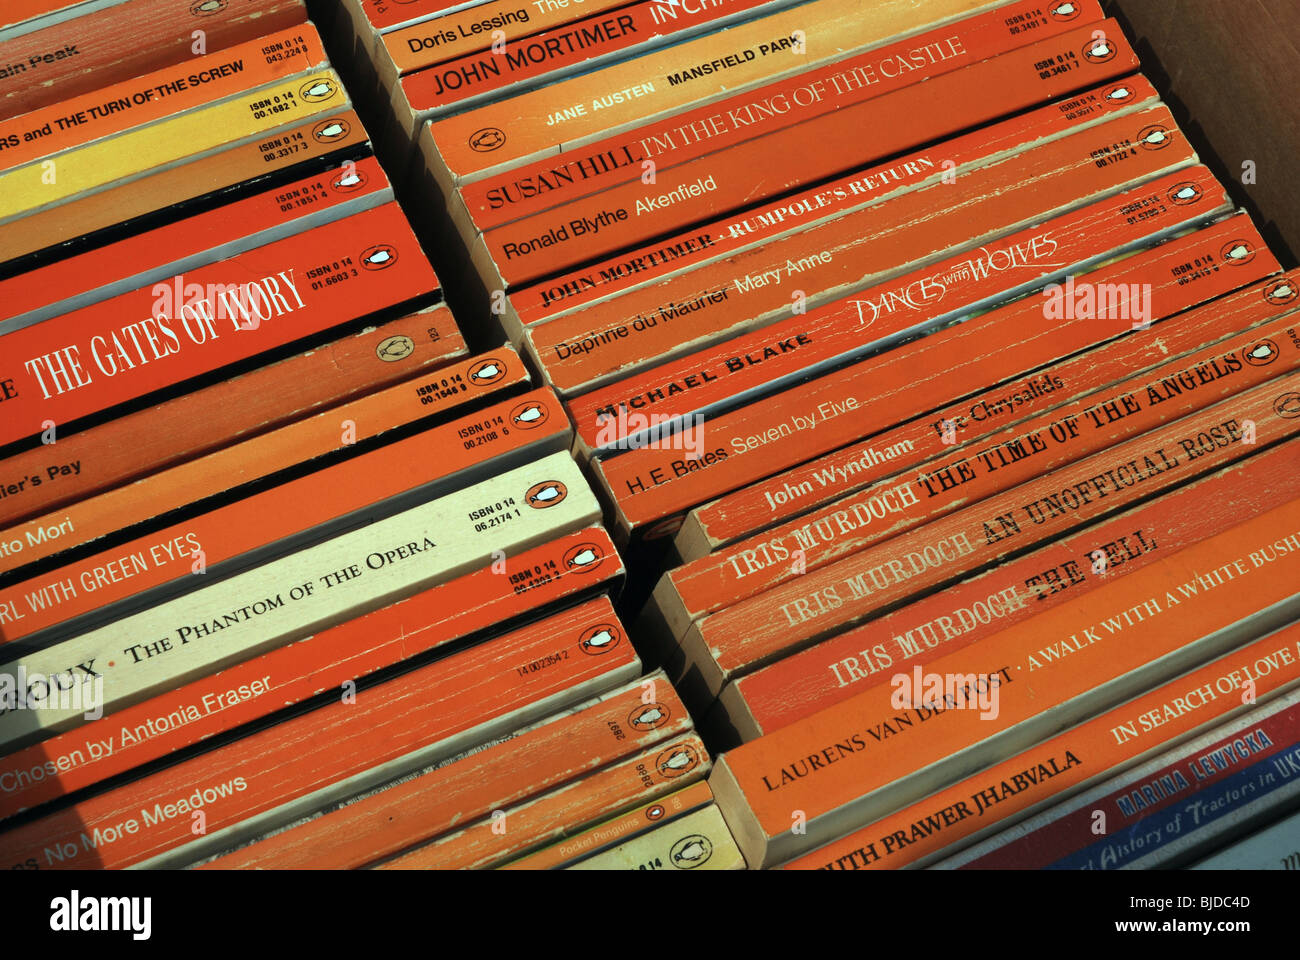 A box of Penguin paperbacks at a church sale. - Stock Image